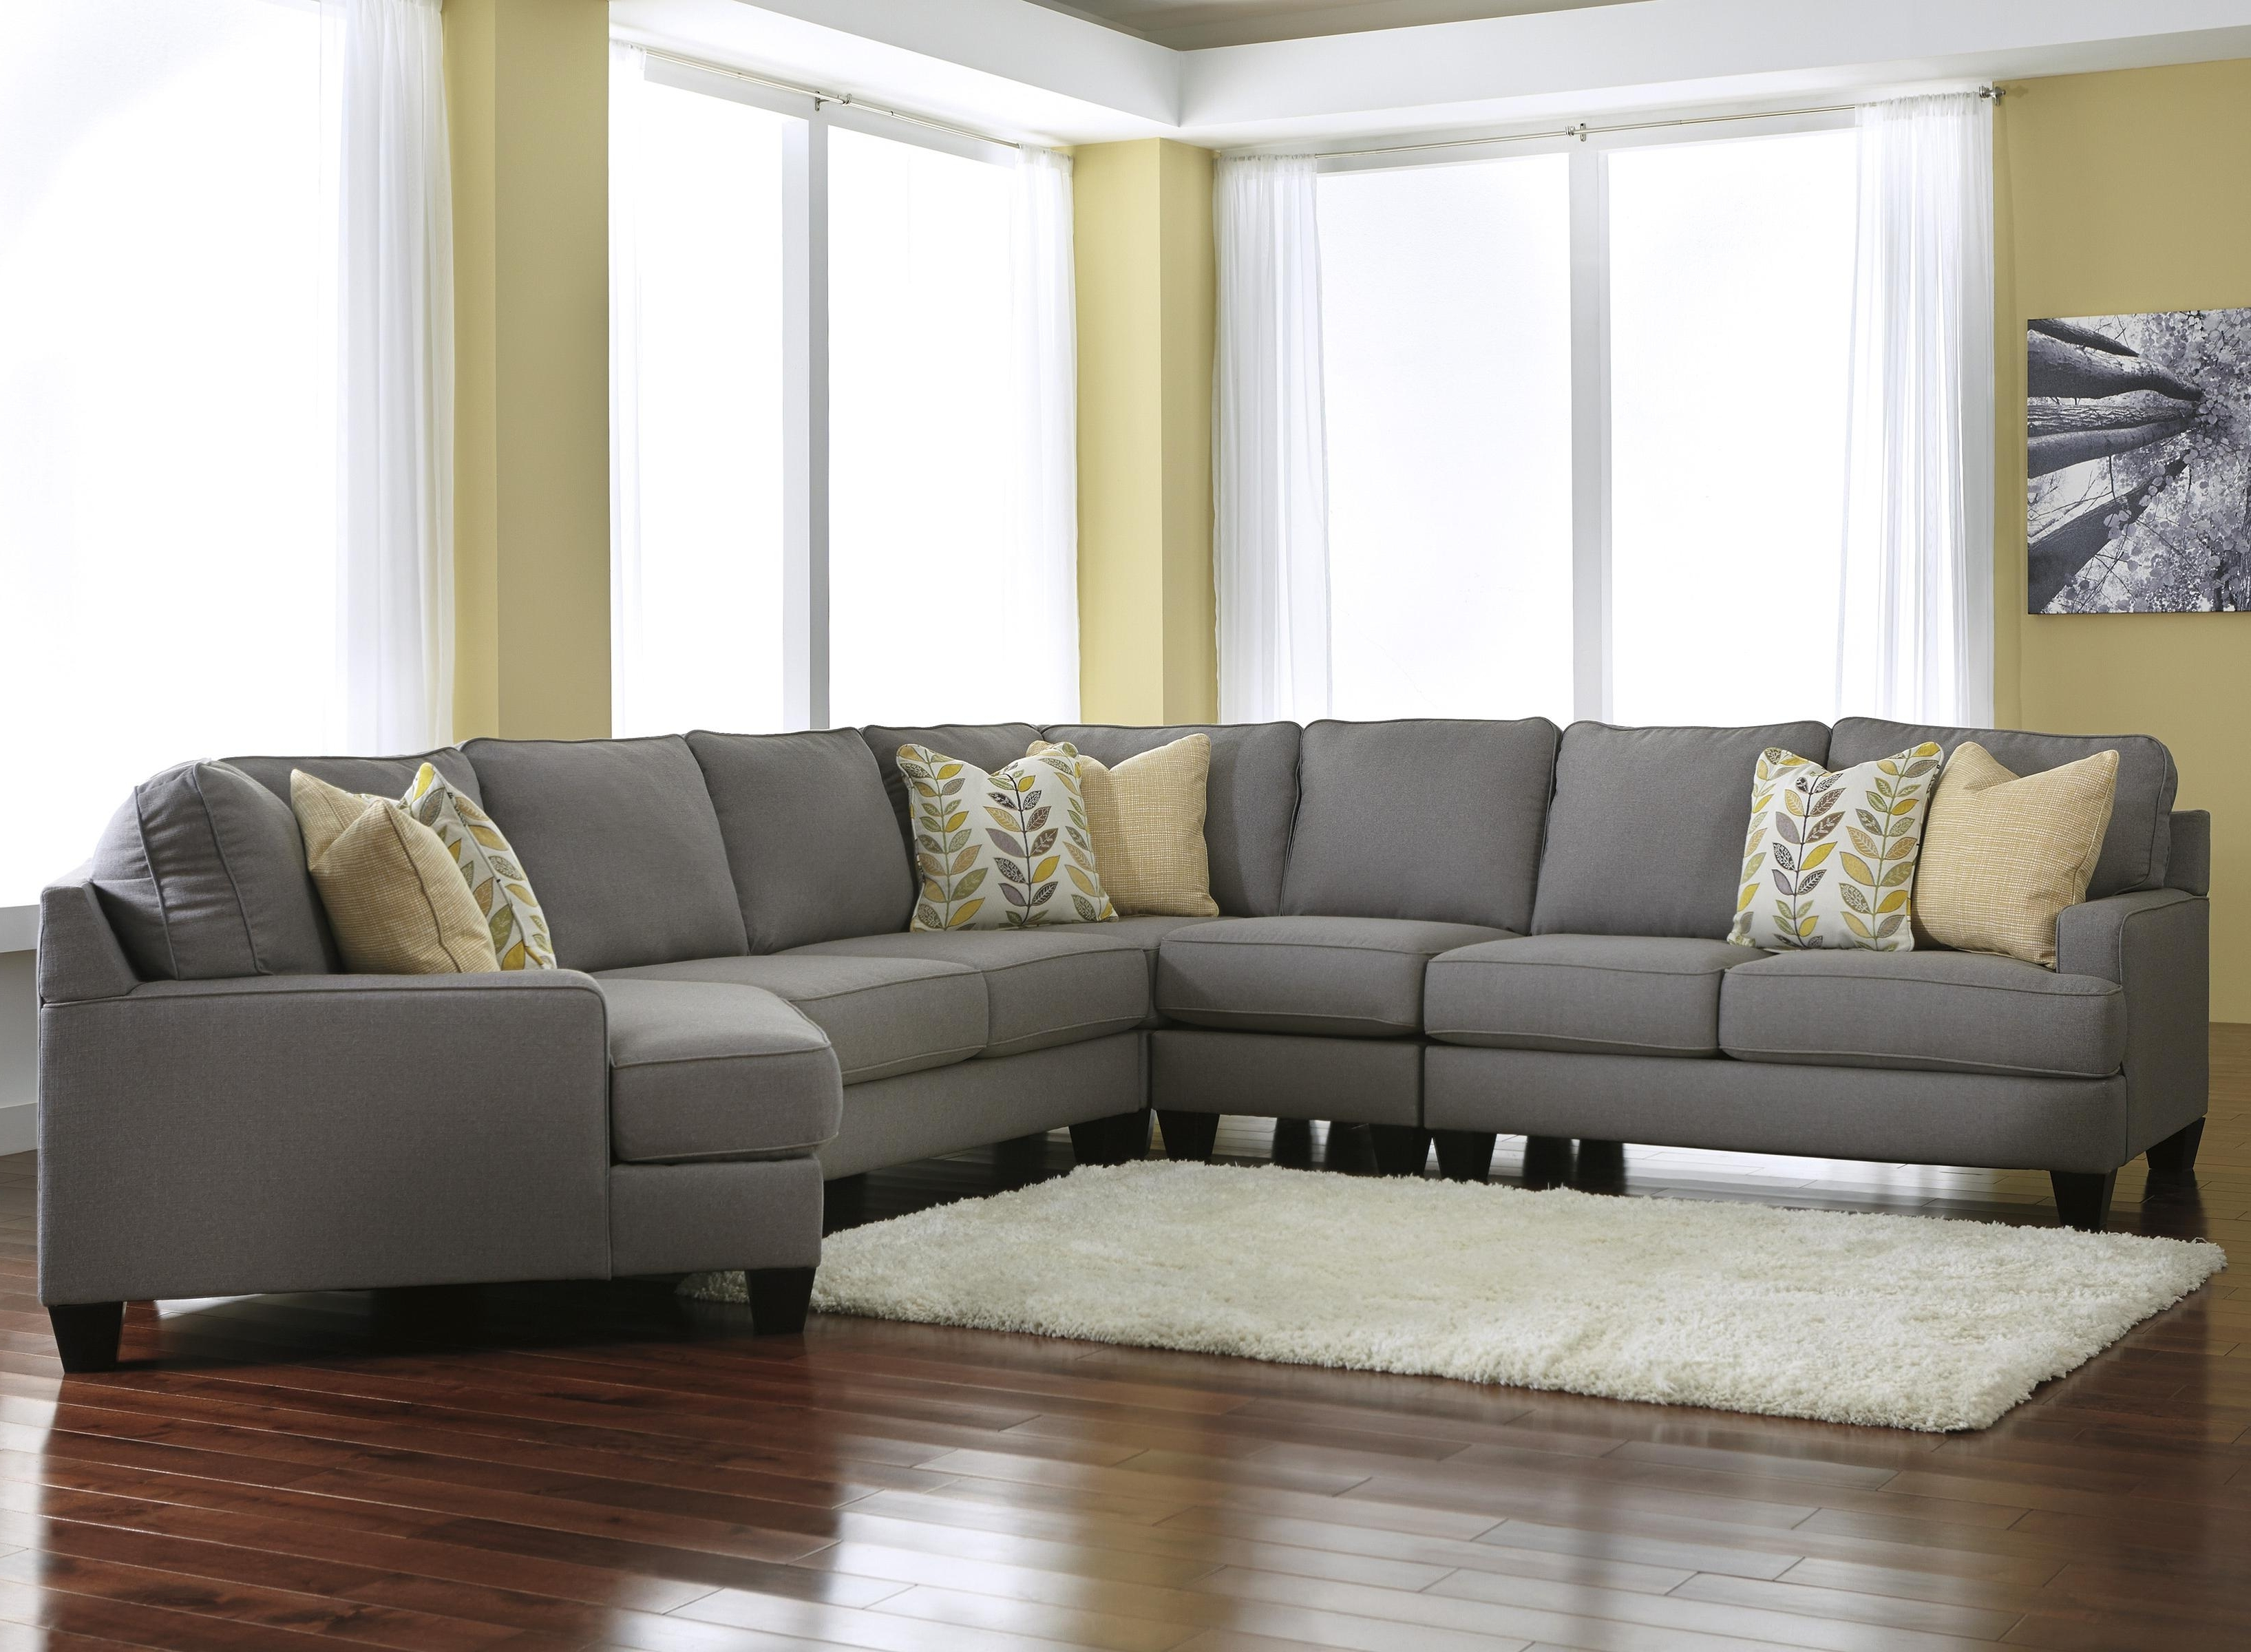 Well Known Chamberly – Alloy Modern 5 Piece Sectional Sofa With Right Cuddler Regarding Eau Claire Wi Sectional Sofas (View 18 of 20)